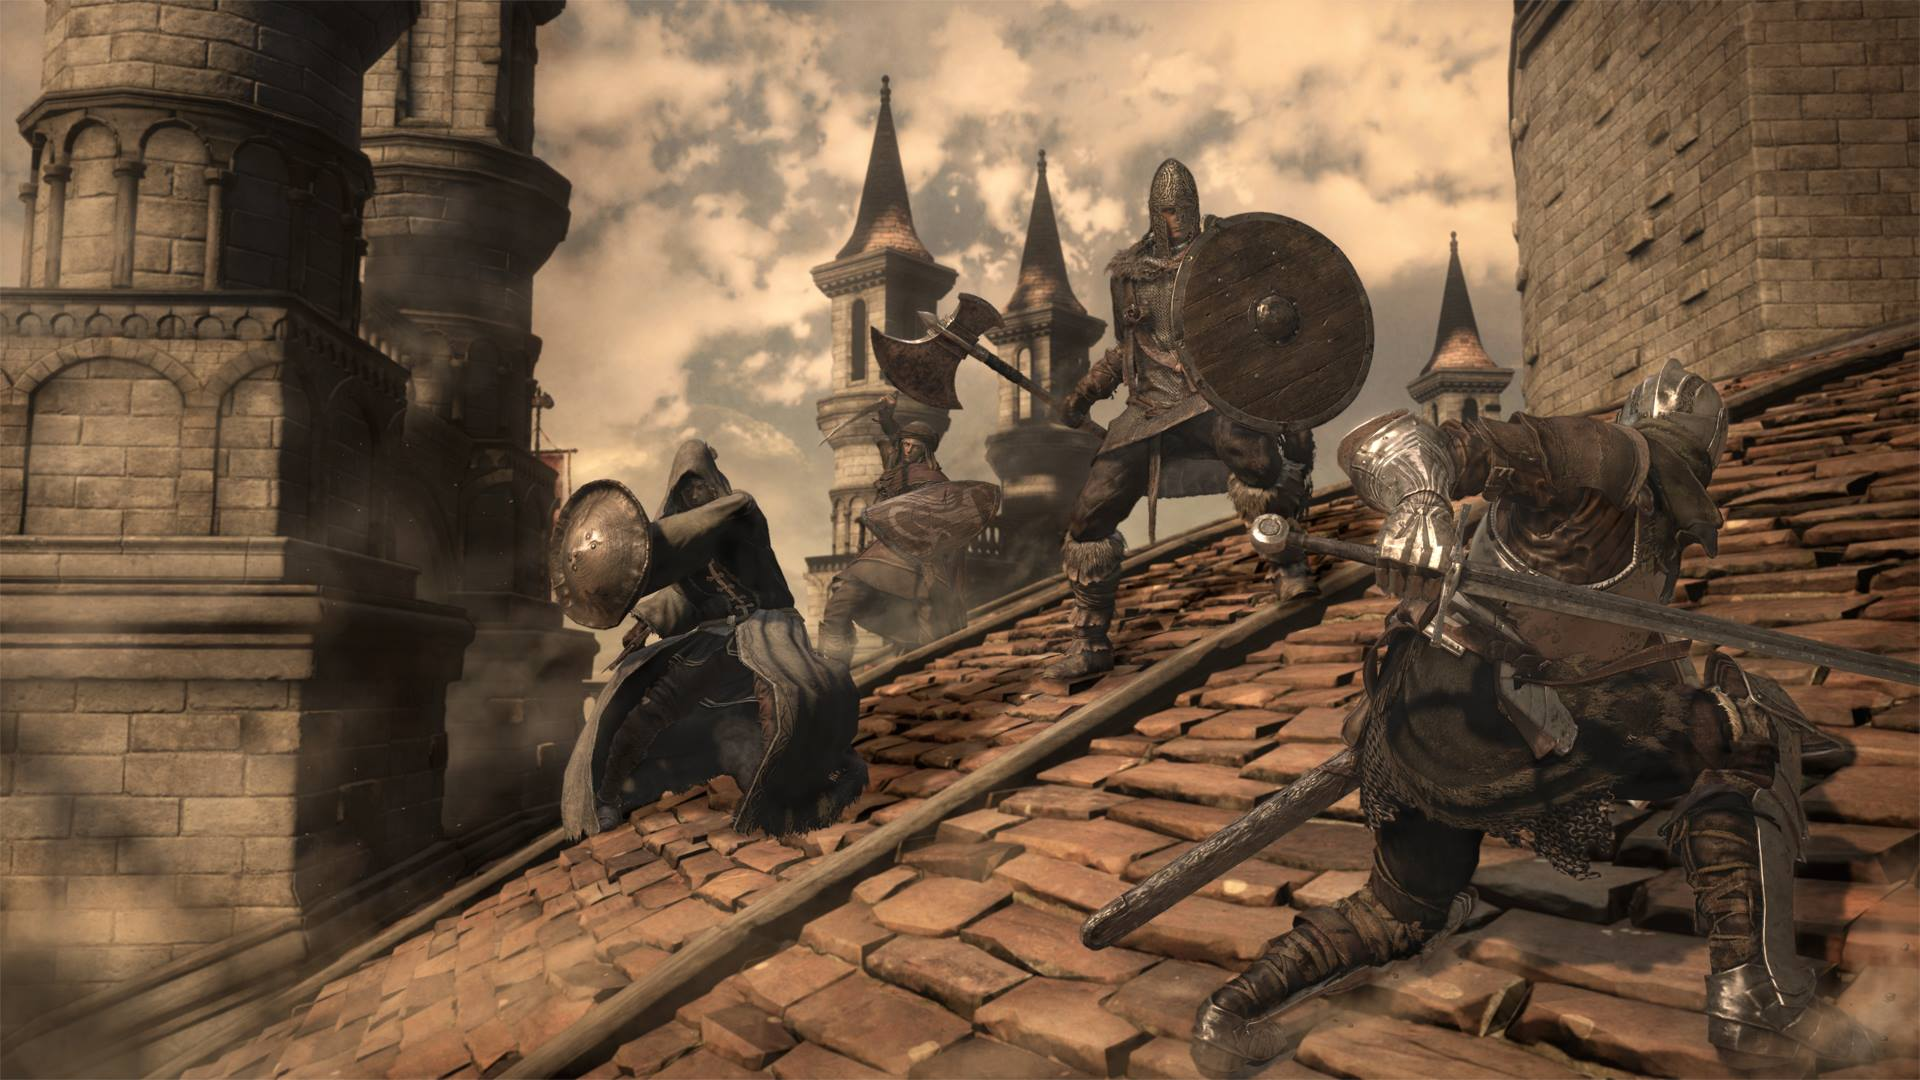 dark souls matchmaking on or off Weapon-based matchmaking dark souls 3 uses soul level + upgrade level to determine multiplayer ranges if a player has a weapon at +10, they can be matched with players who have +8 or more.